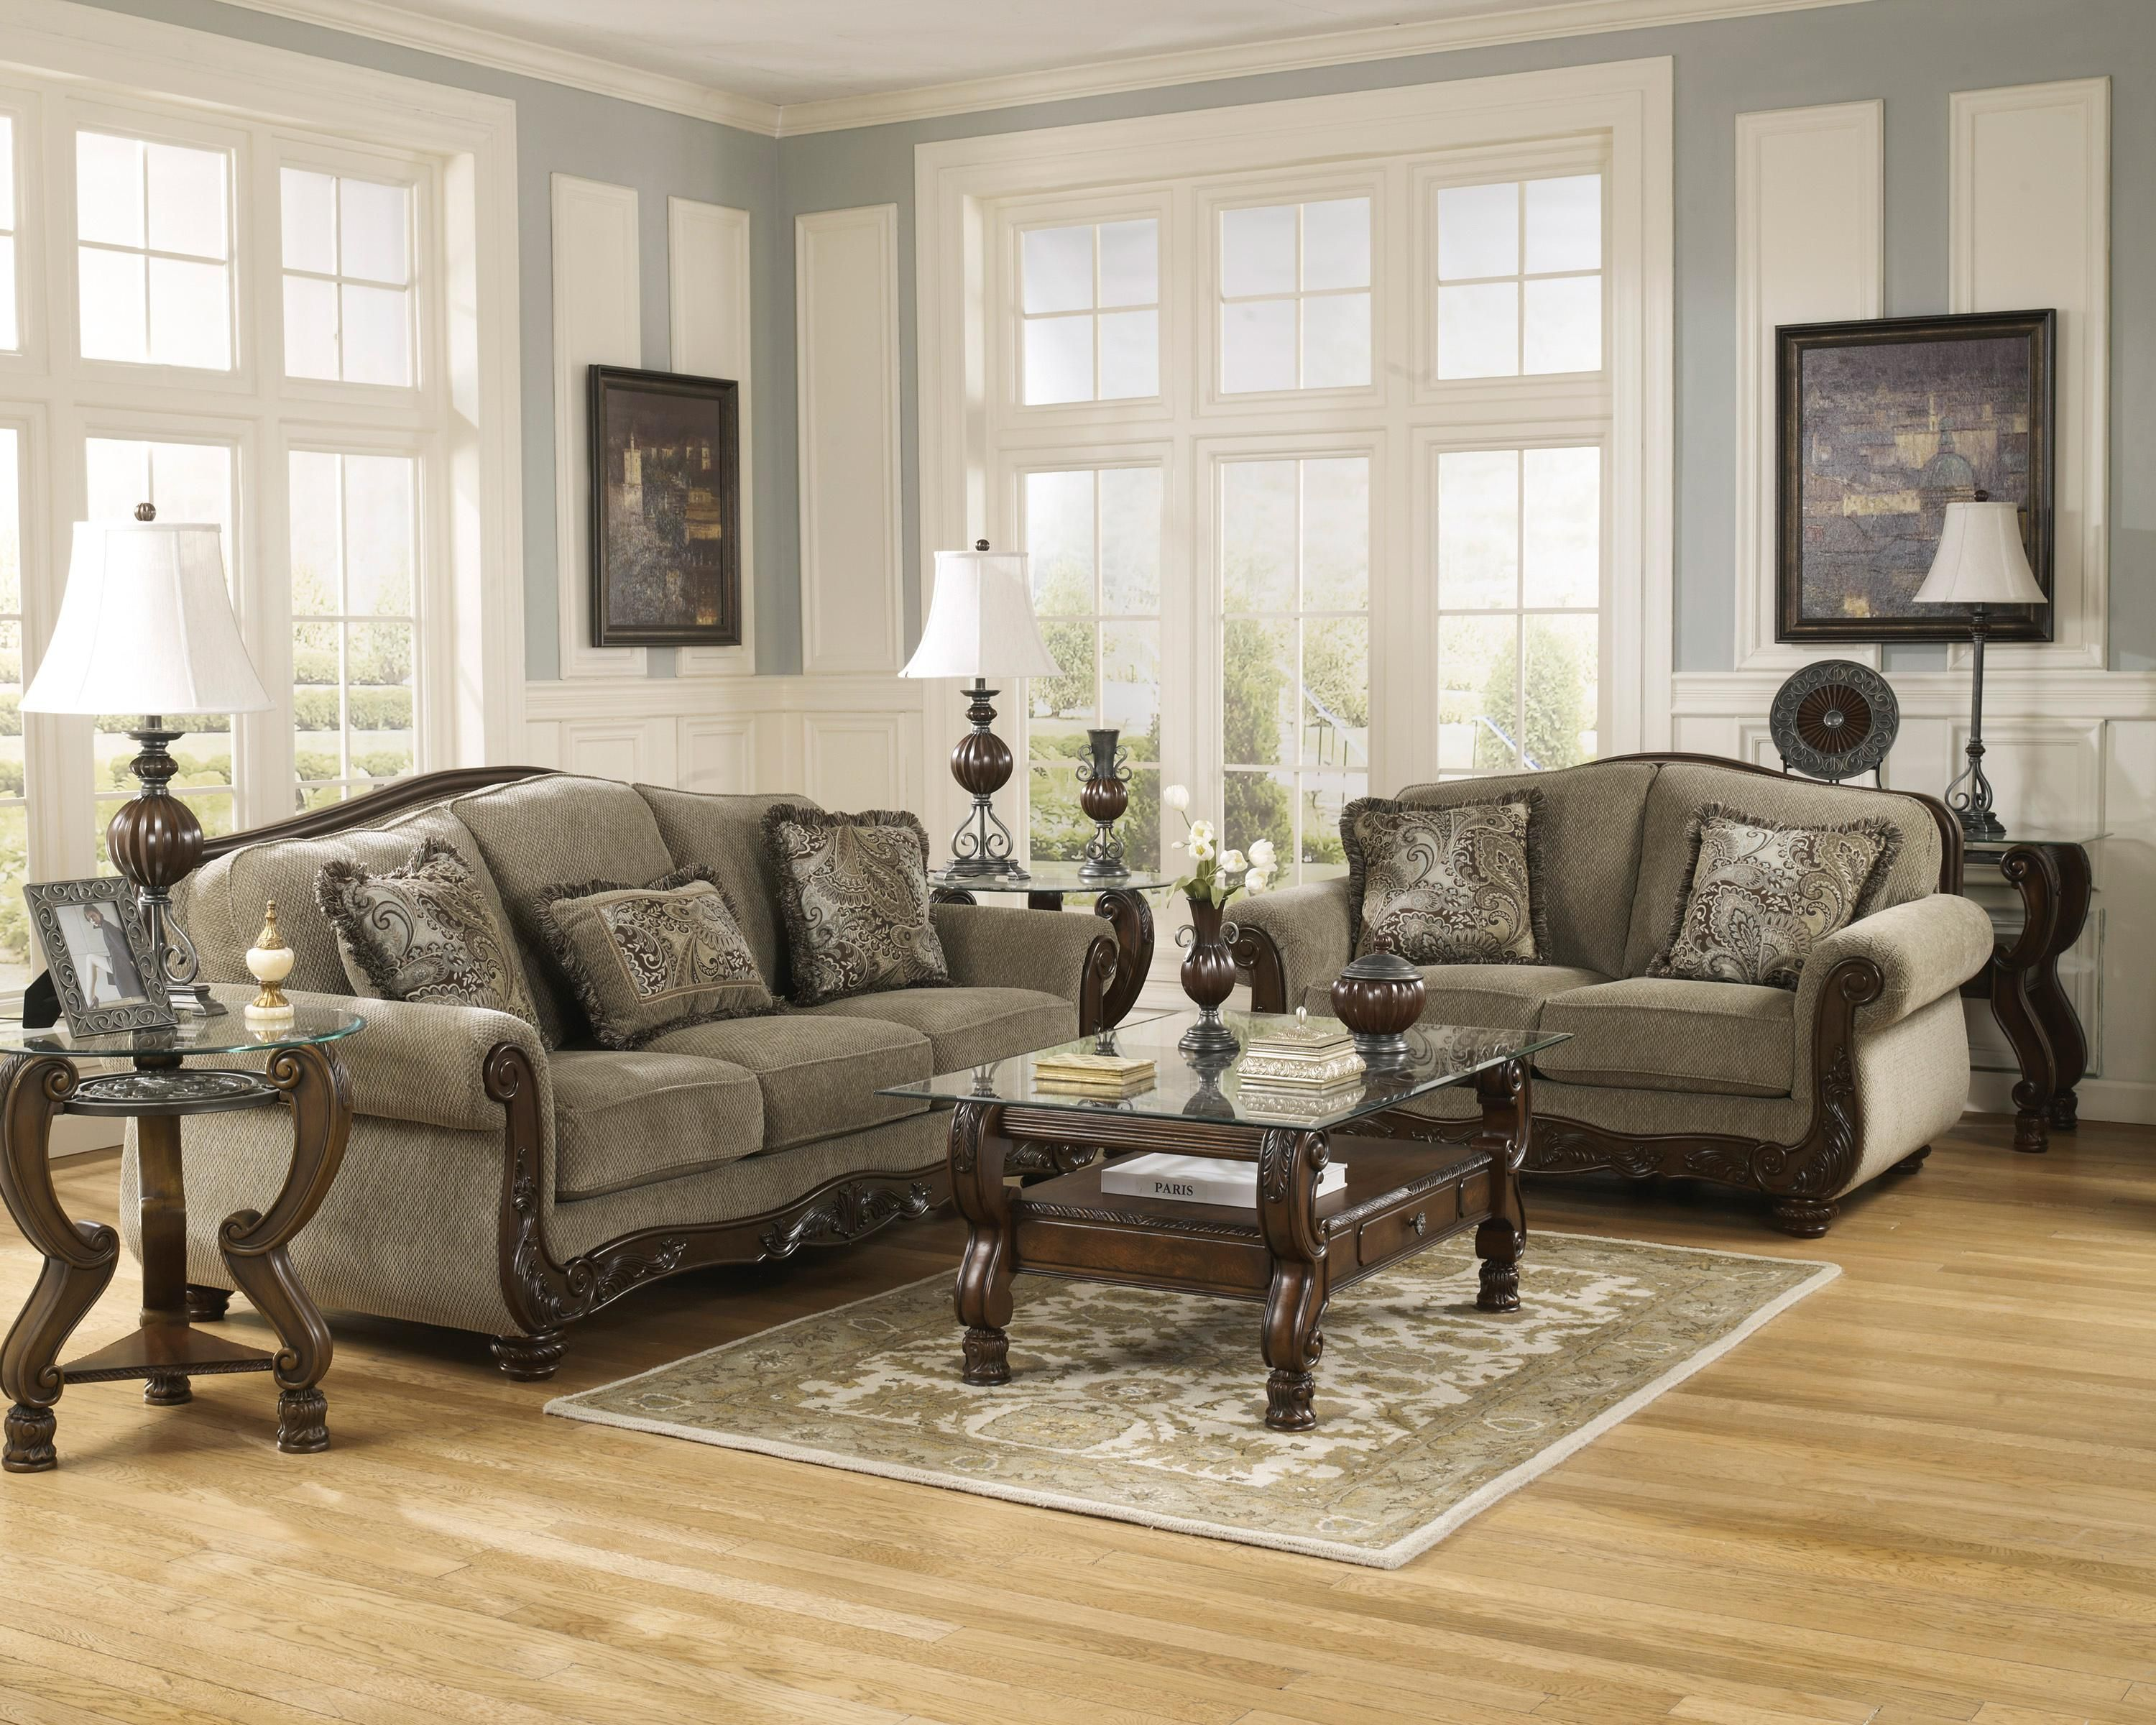 reclining sectional by recliner rotmans of with gray corner inspirational piece console pewter center graphics signature design couch the sofa tambo couches ashley